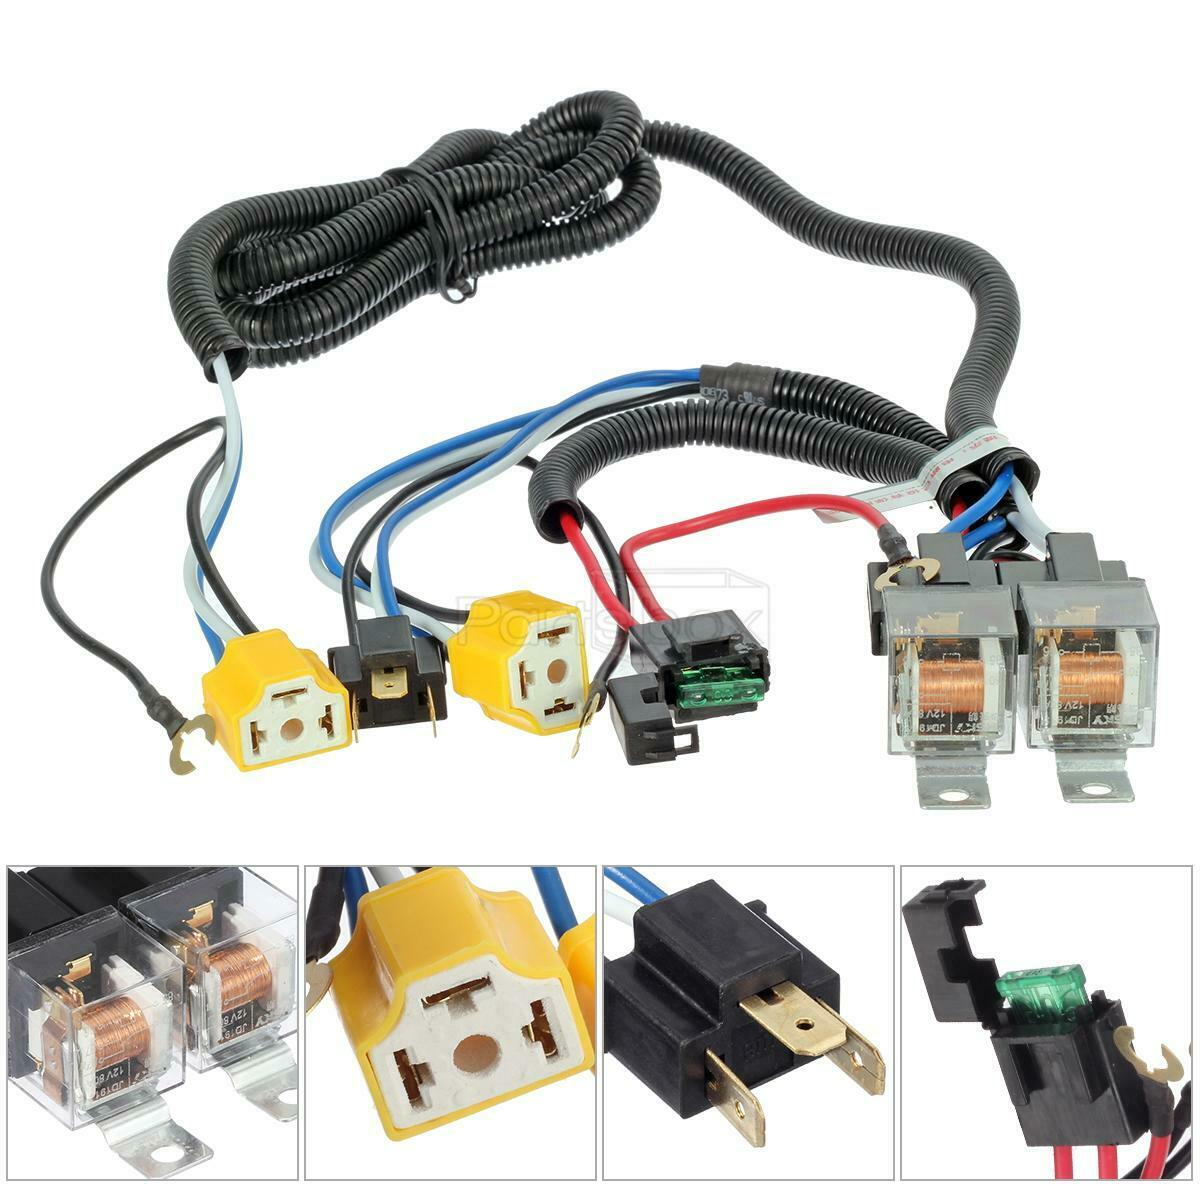 2 Headlight H4 Headlamp Light Bulb Ceramic Socket Plugs Relay Wiring Kit Harness 1 Of 6only 4 Available See More